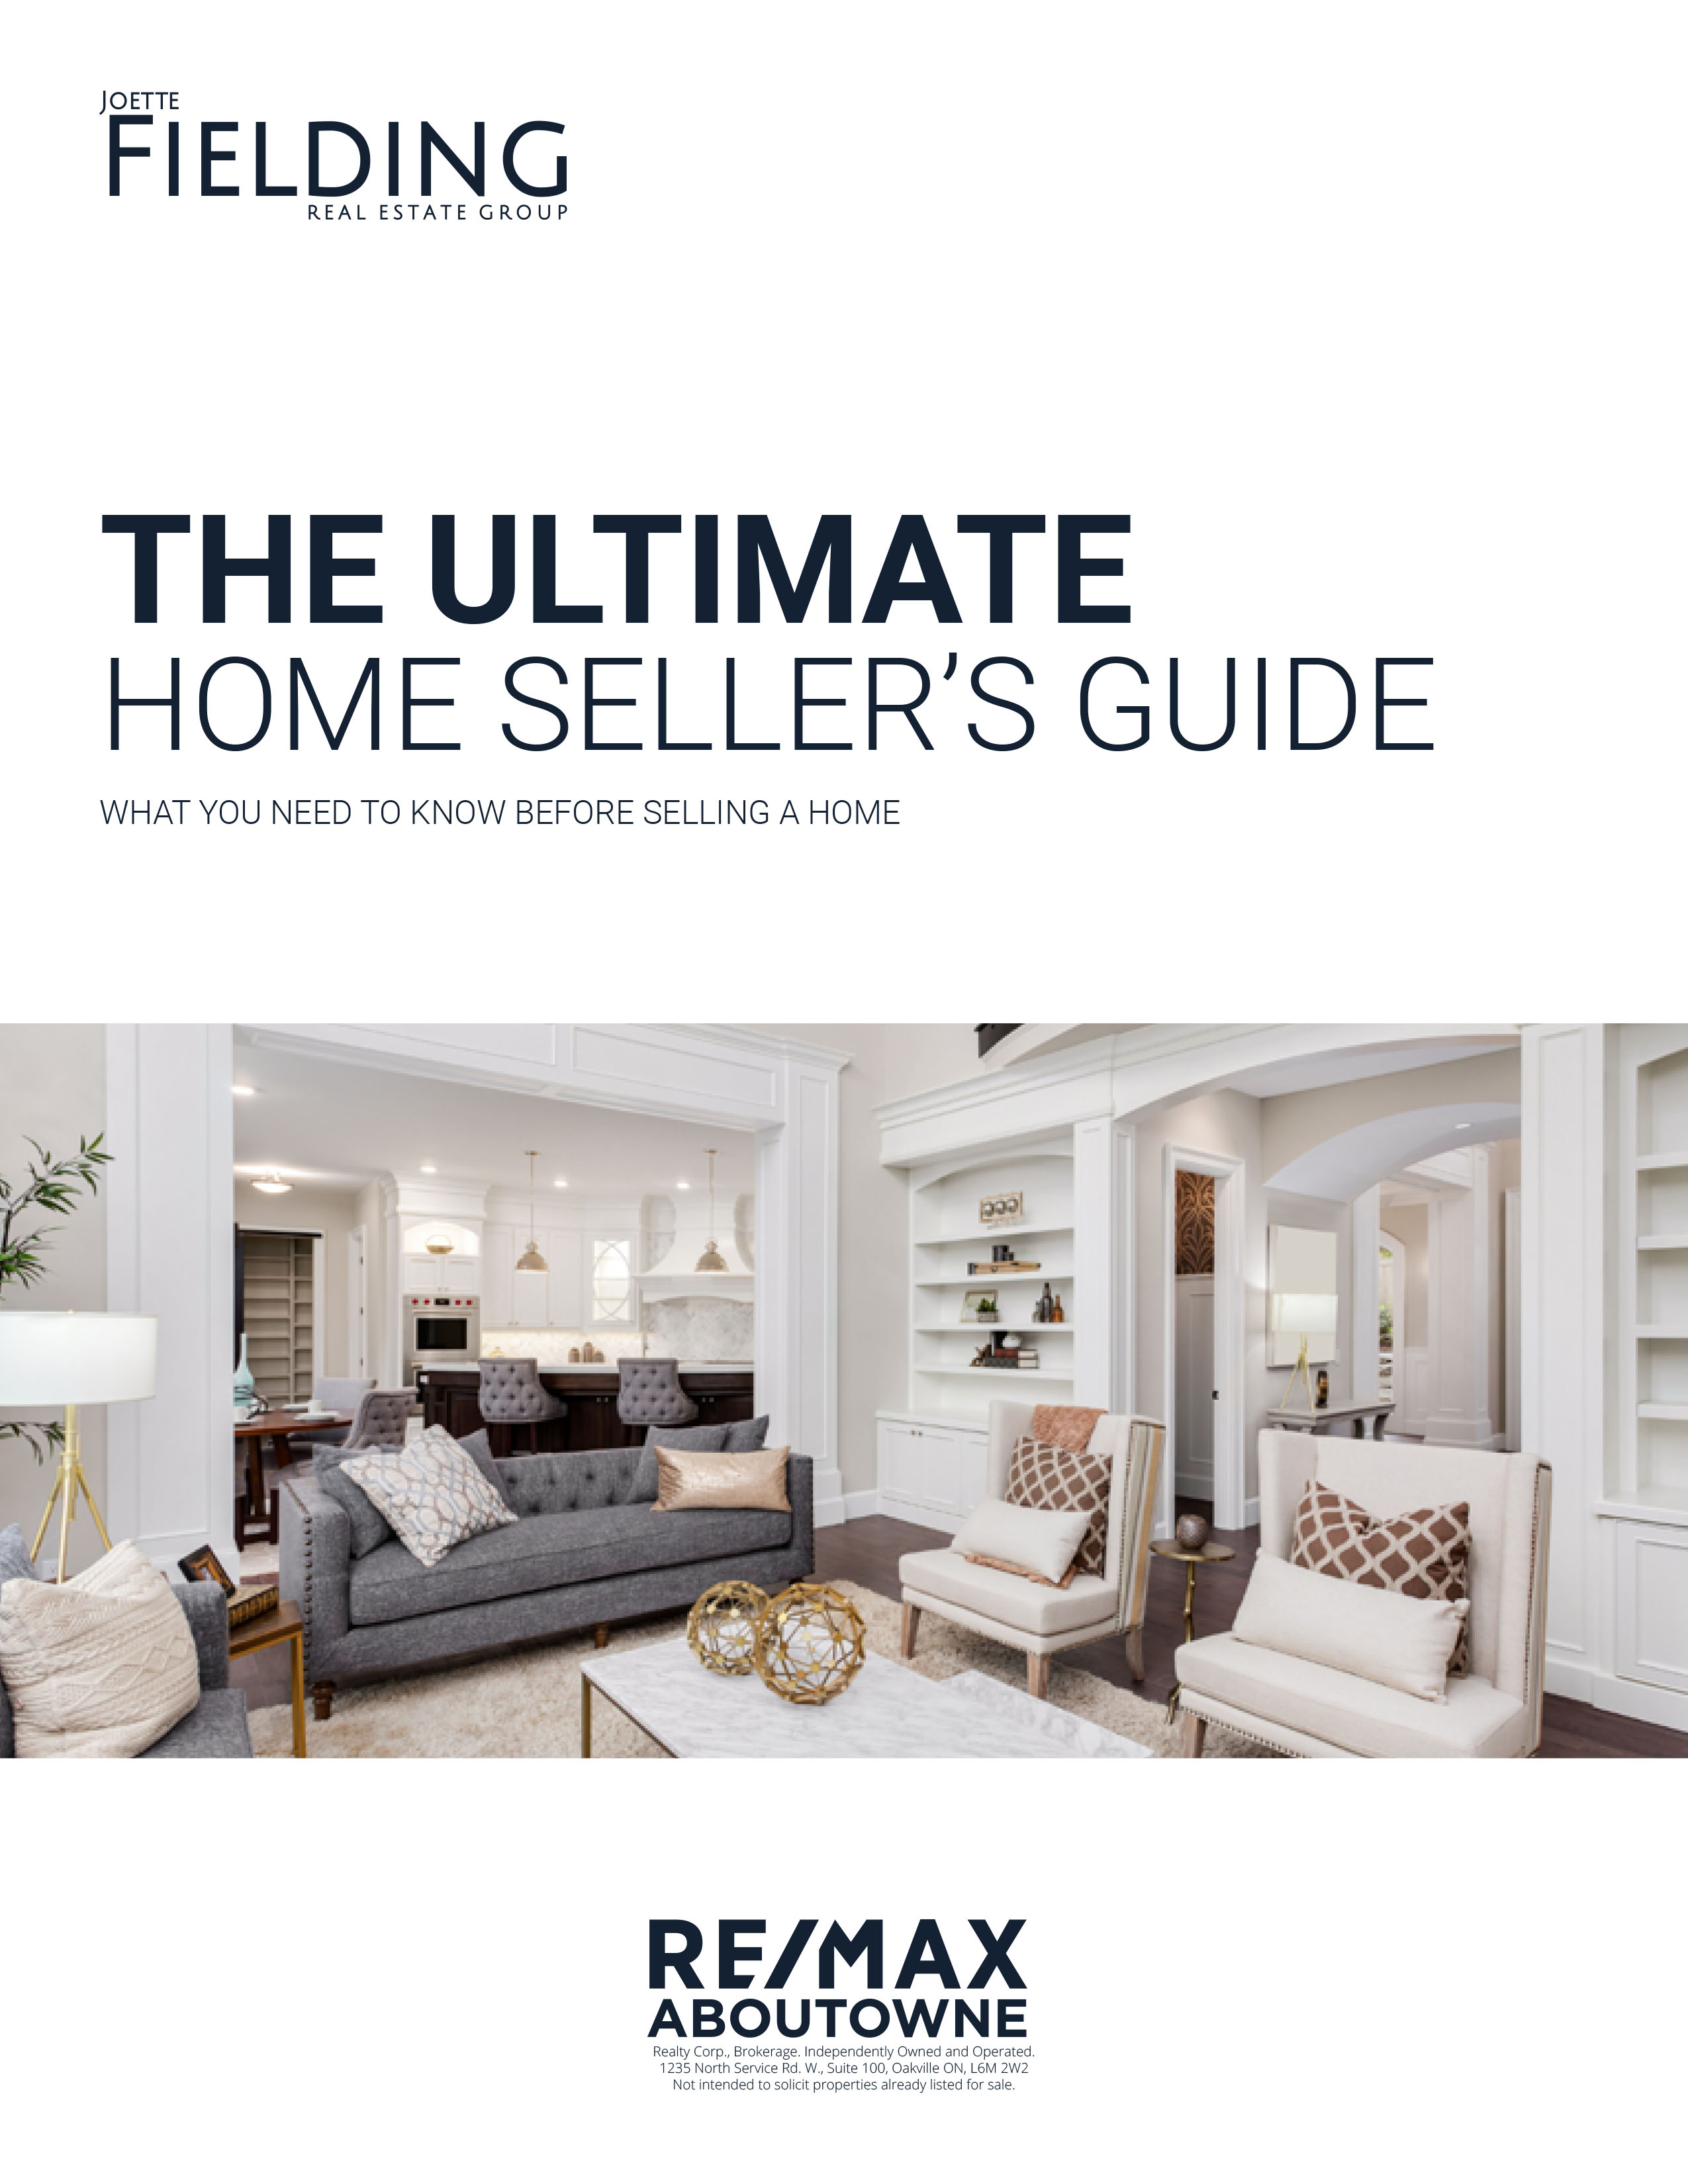 The Ultimate Home Seller's Guide